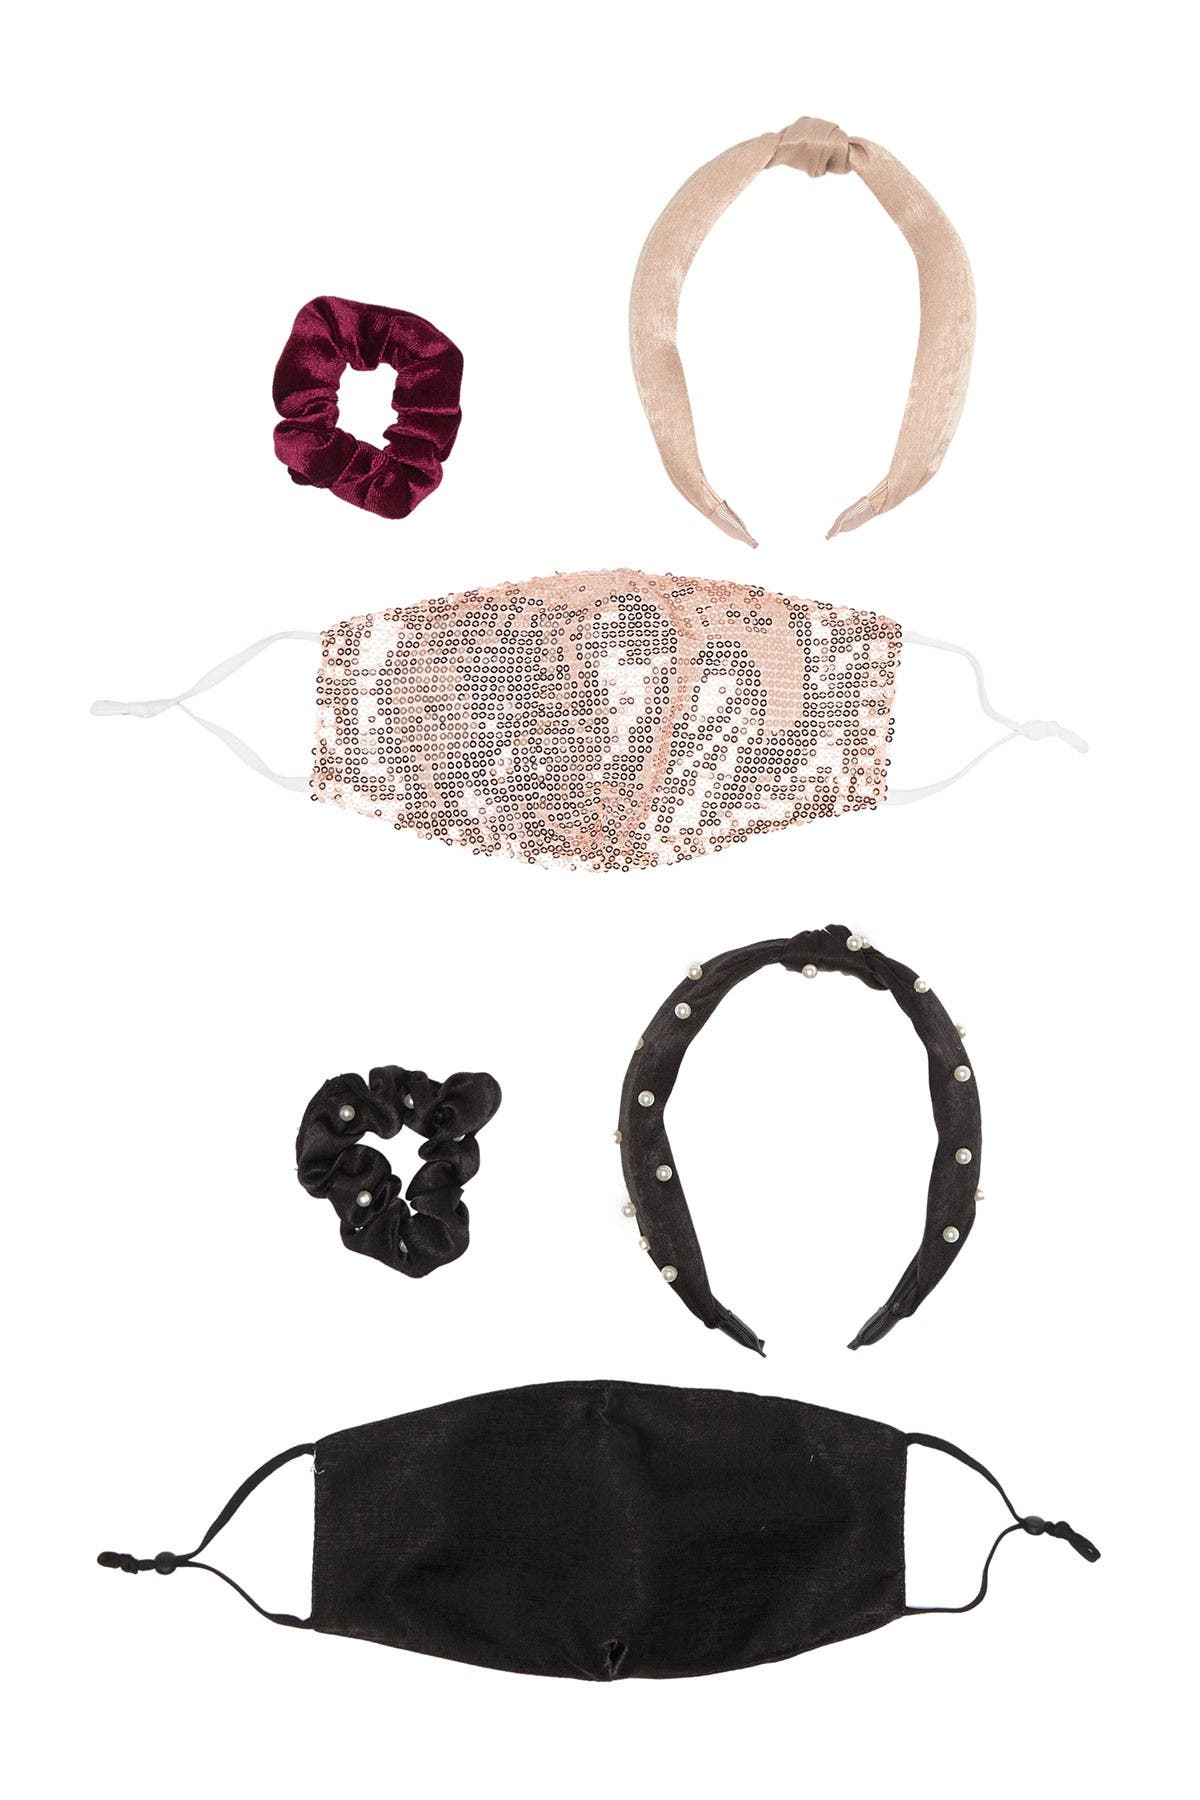 Image of CAPELLI OF NEW YORK Face Mask & Hair Accessory 6-Piece Set